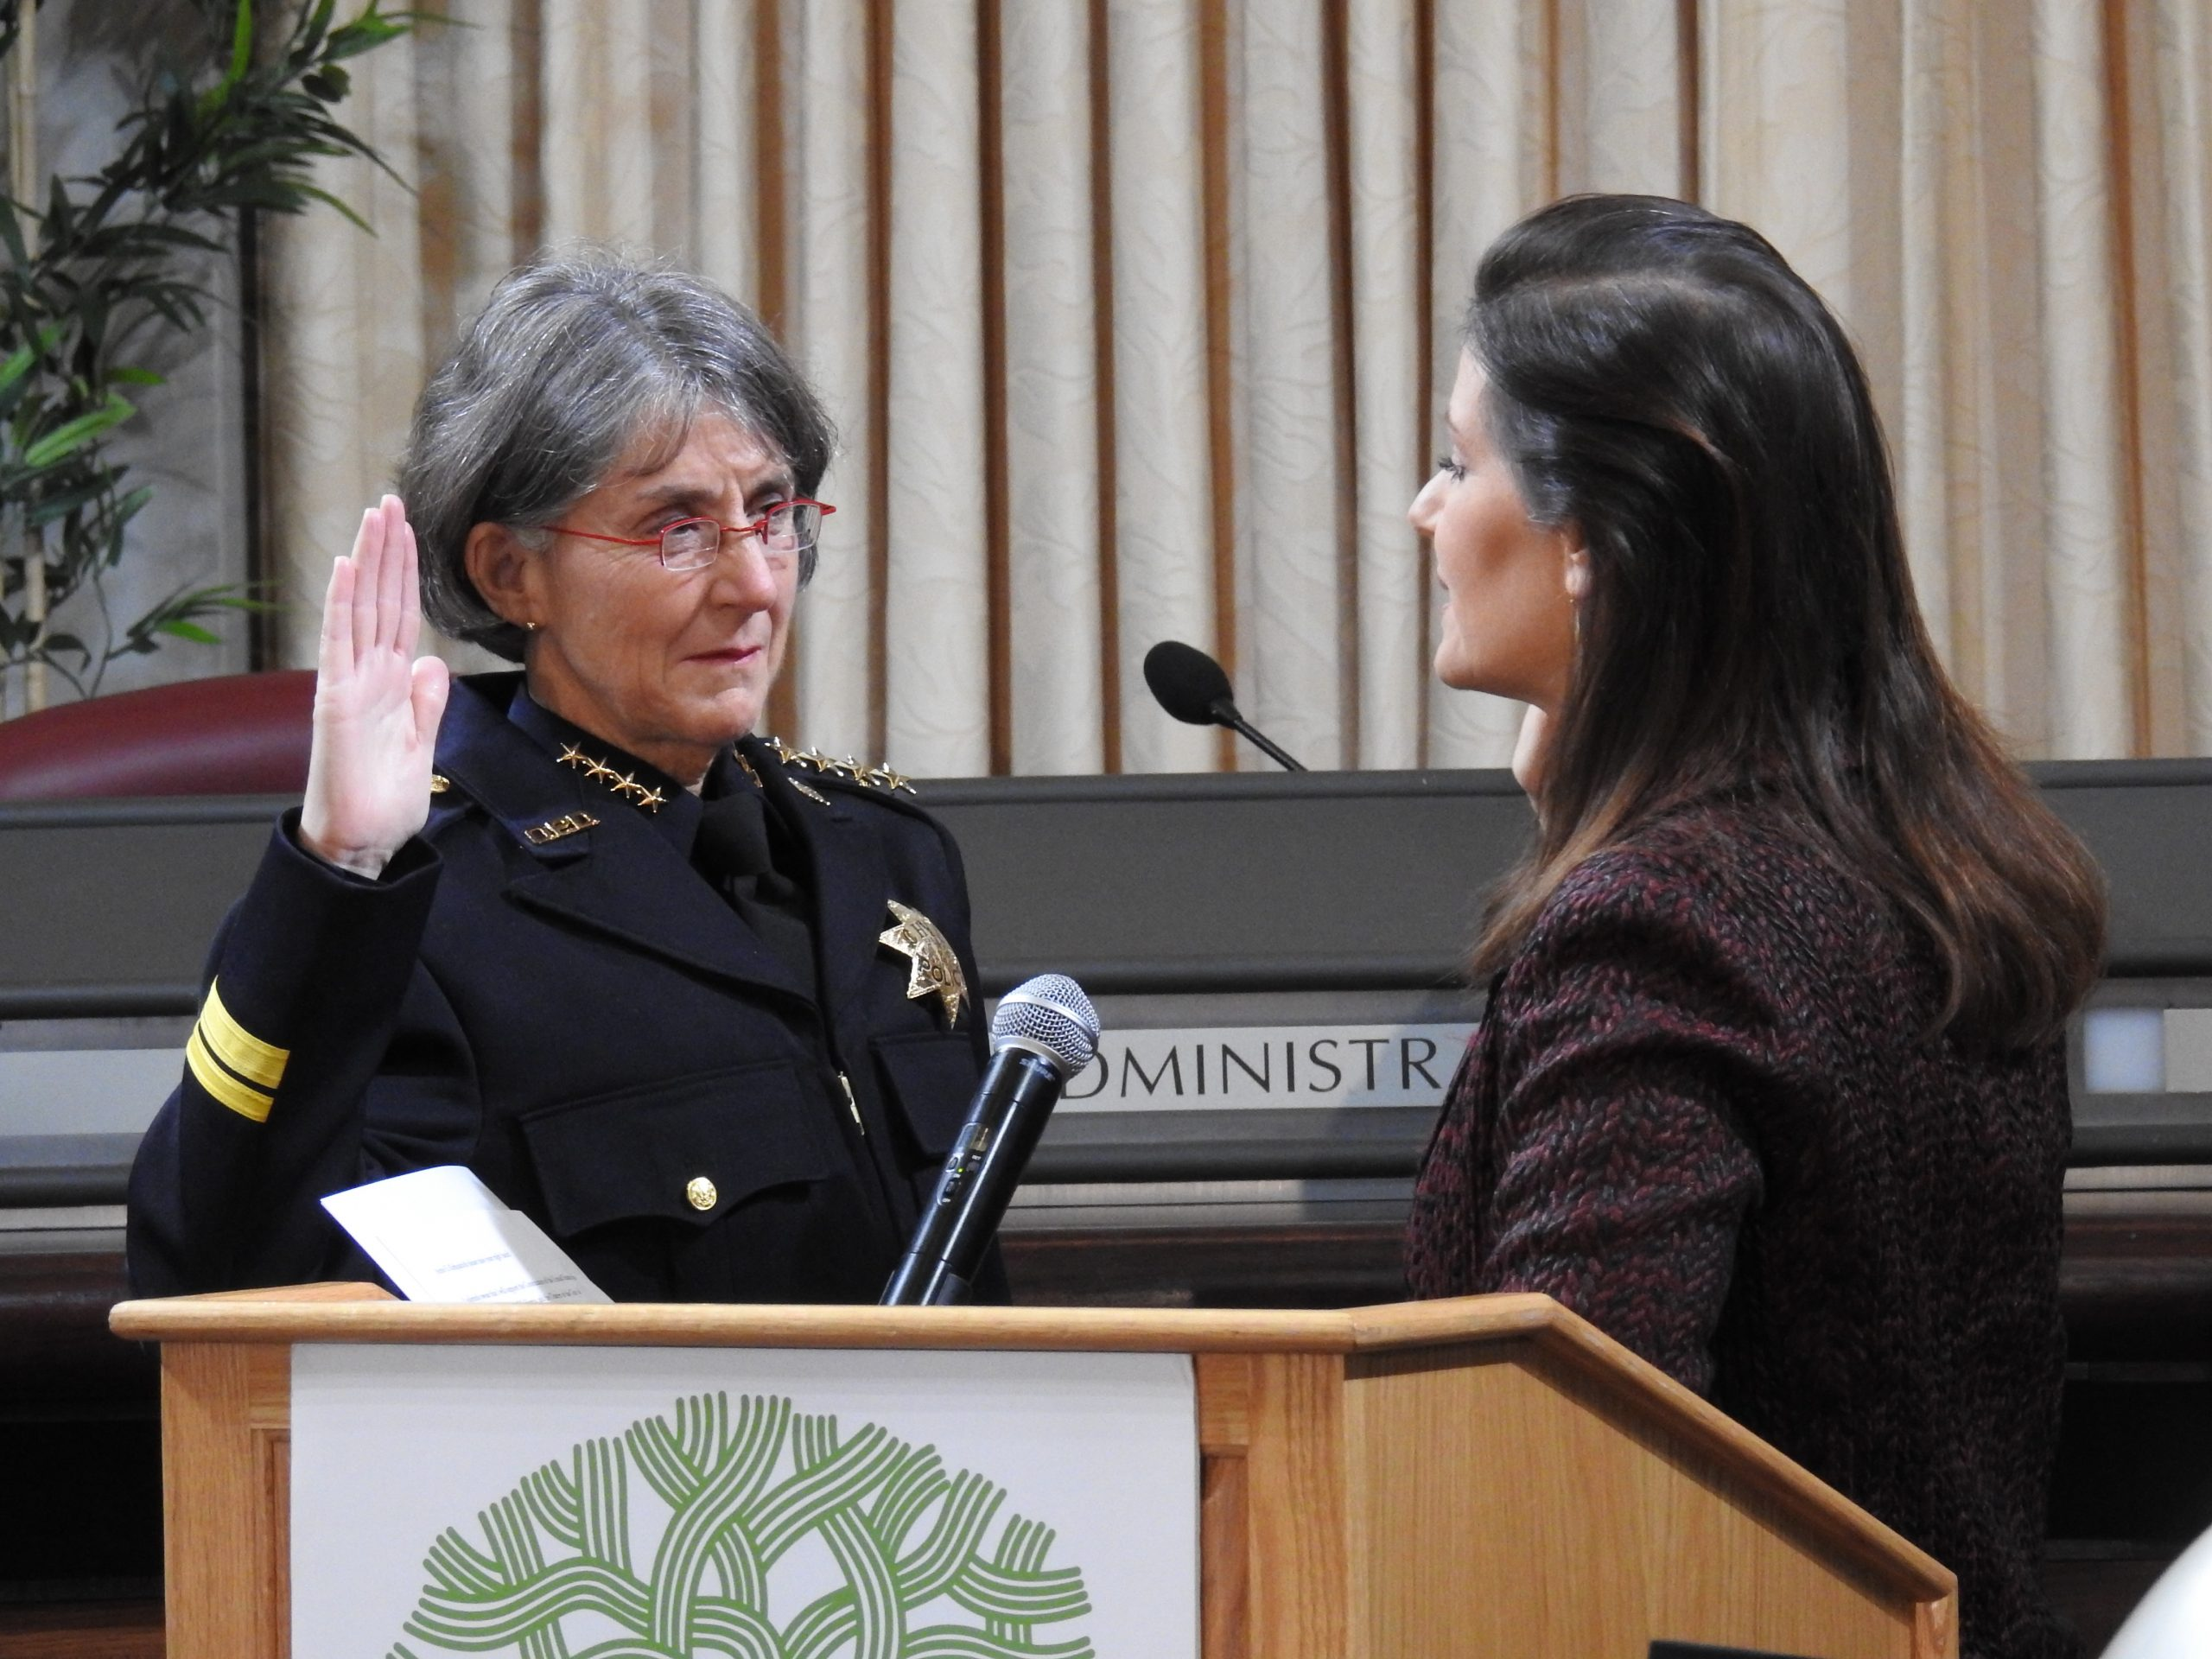 Anne Kirkpatrick sworn in as Oakland police chief by Mayor Libby Schaaf on Feb. 27, 2017. Photo by Scott Morris.